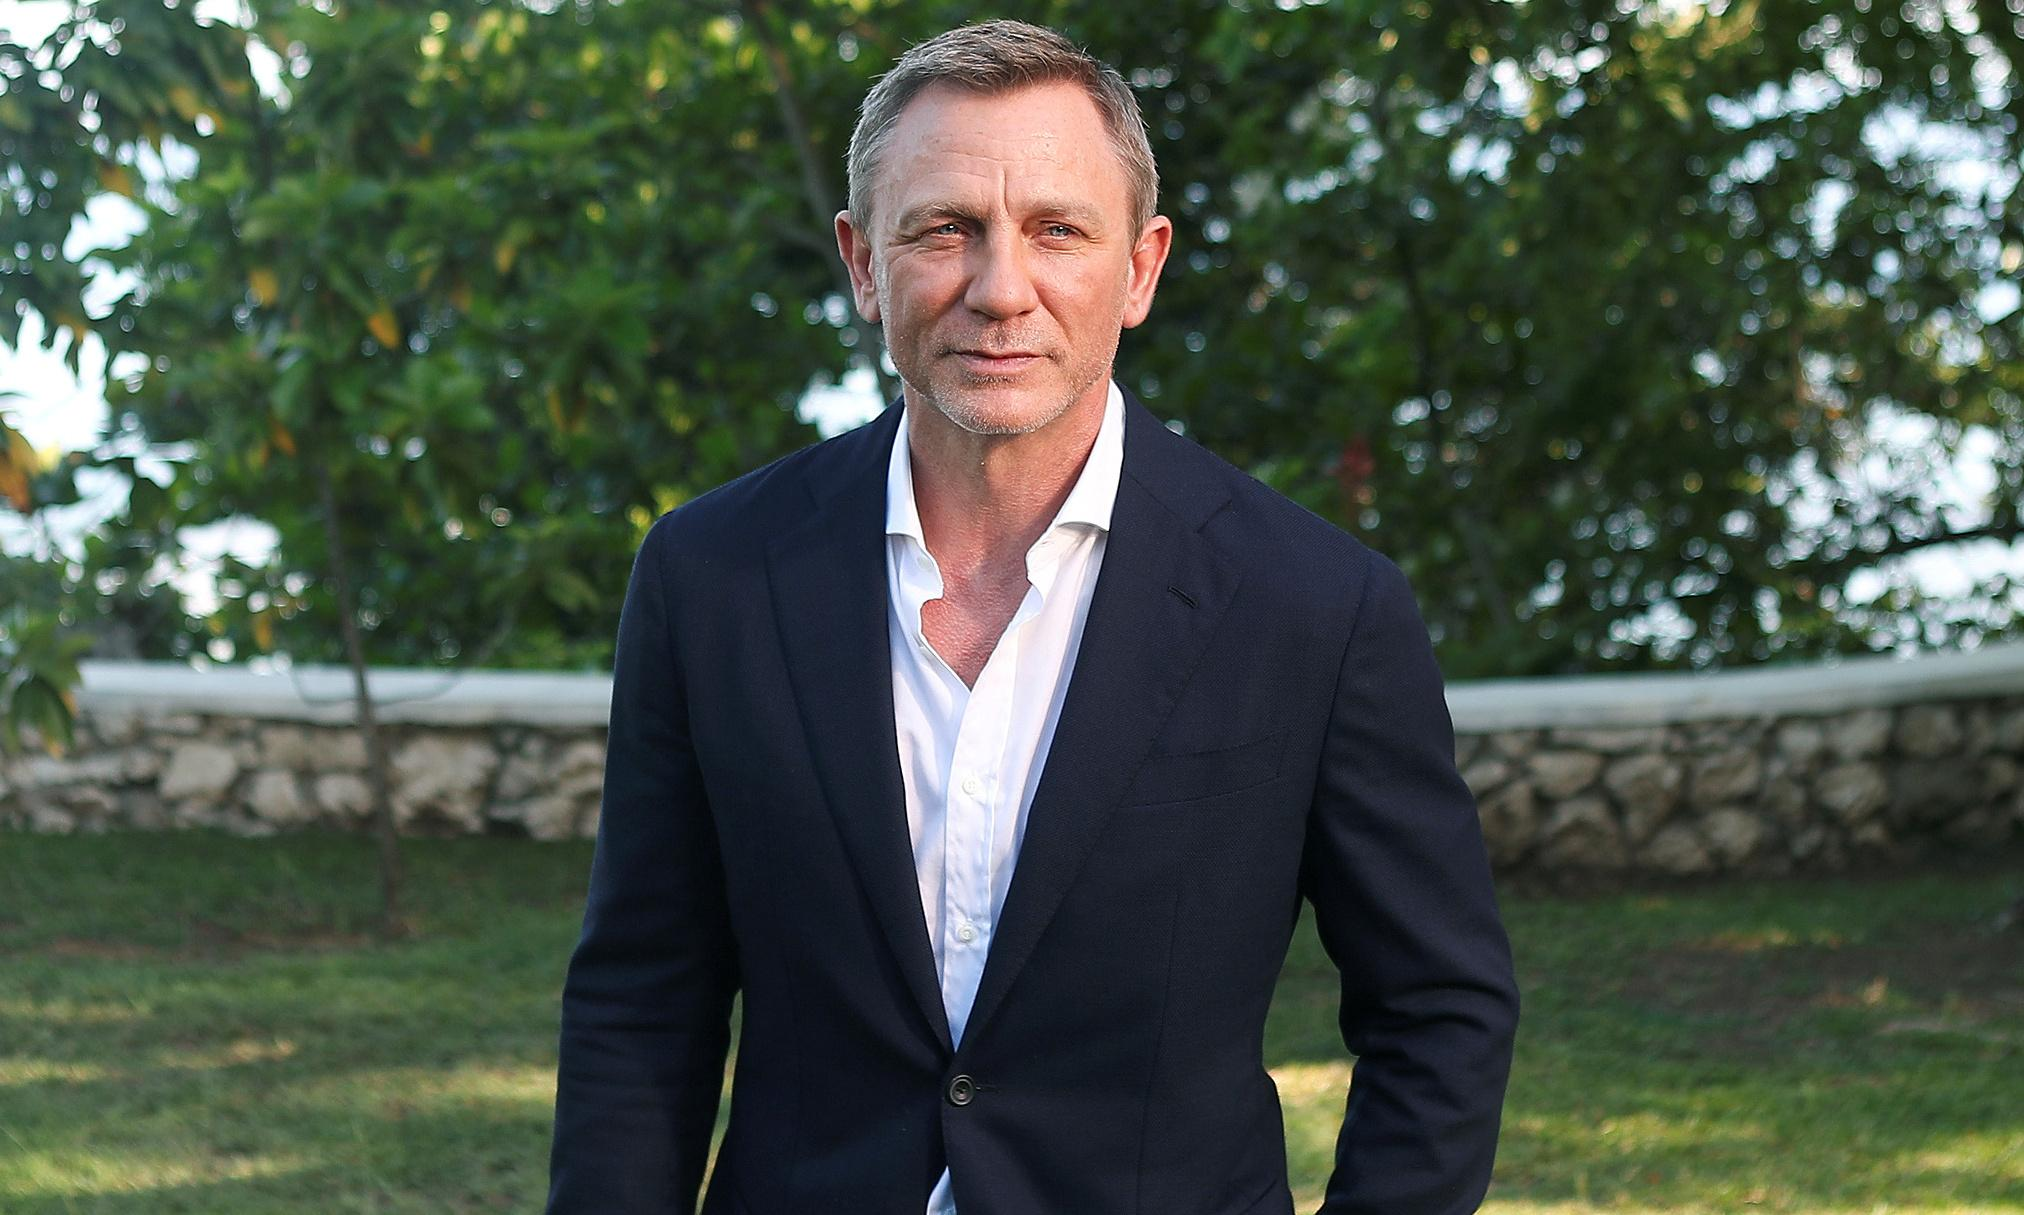 No Time to Die: 25th James Bond film gets a title